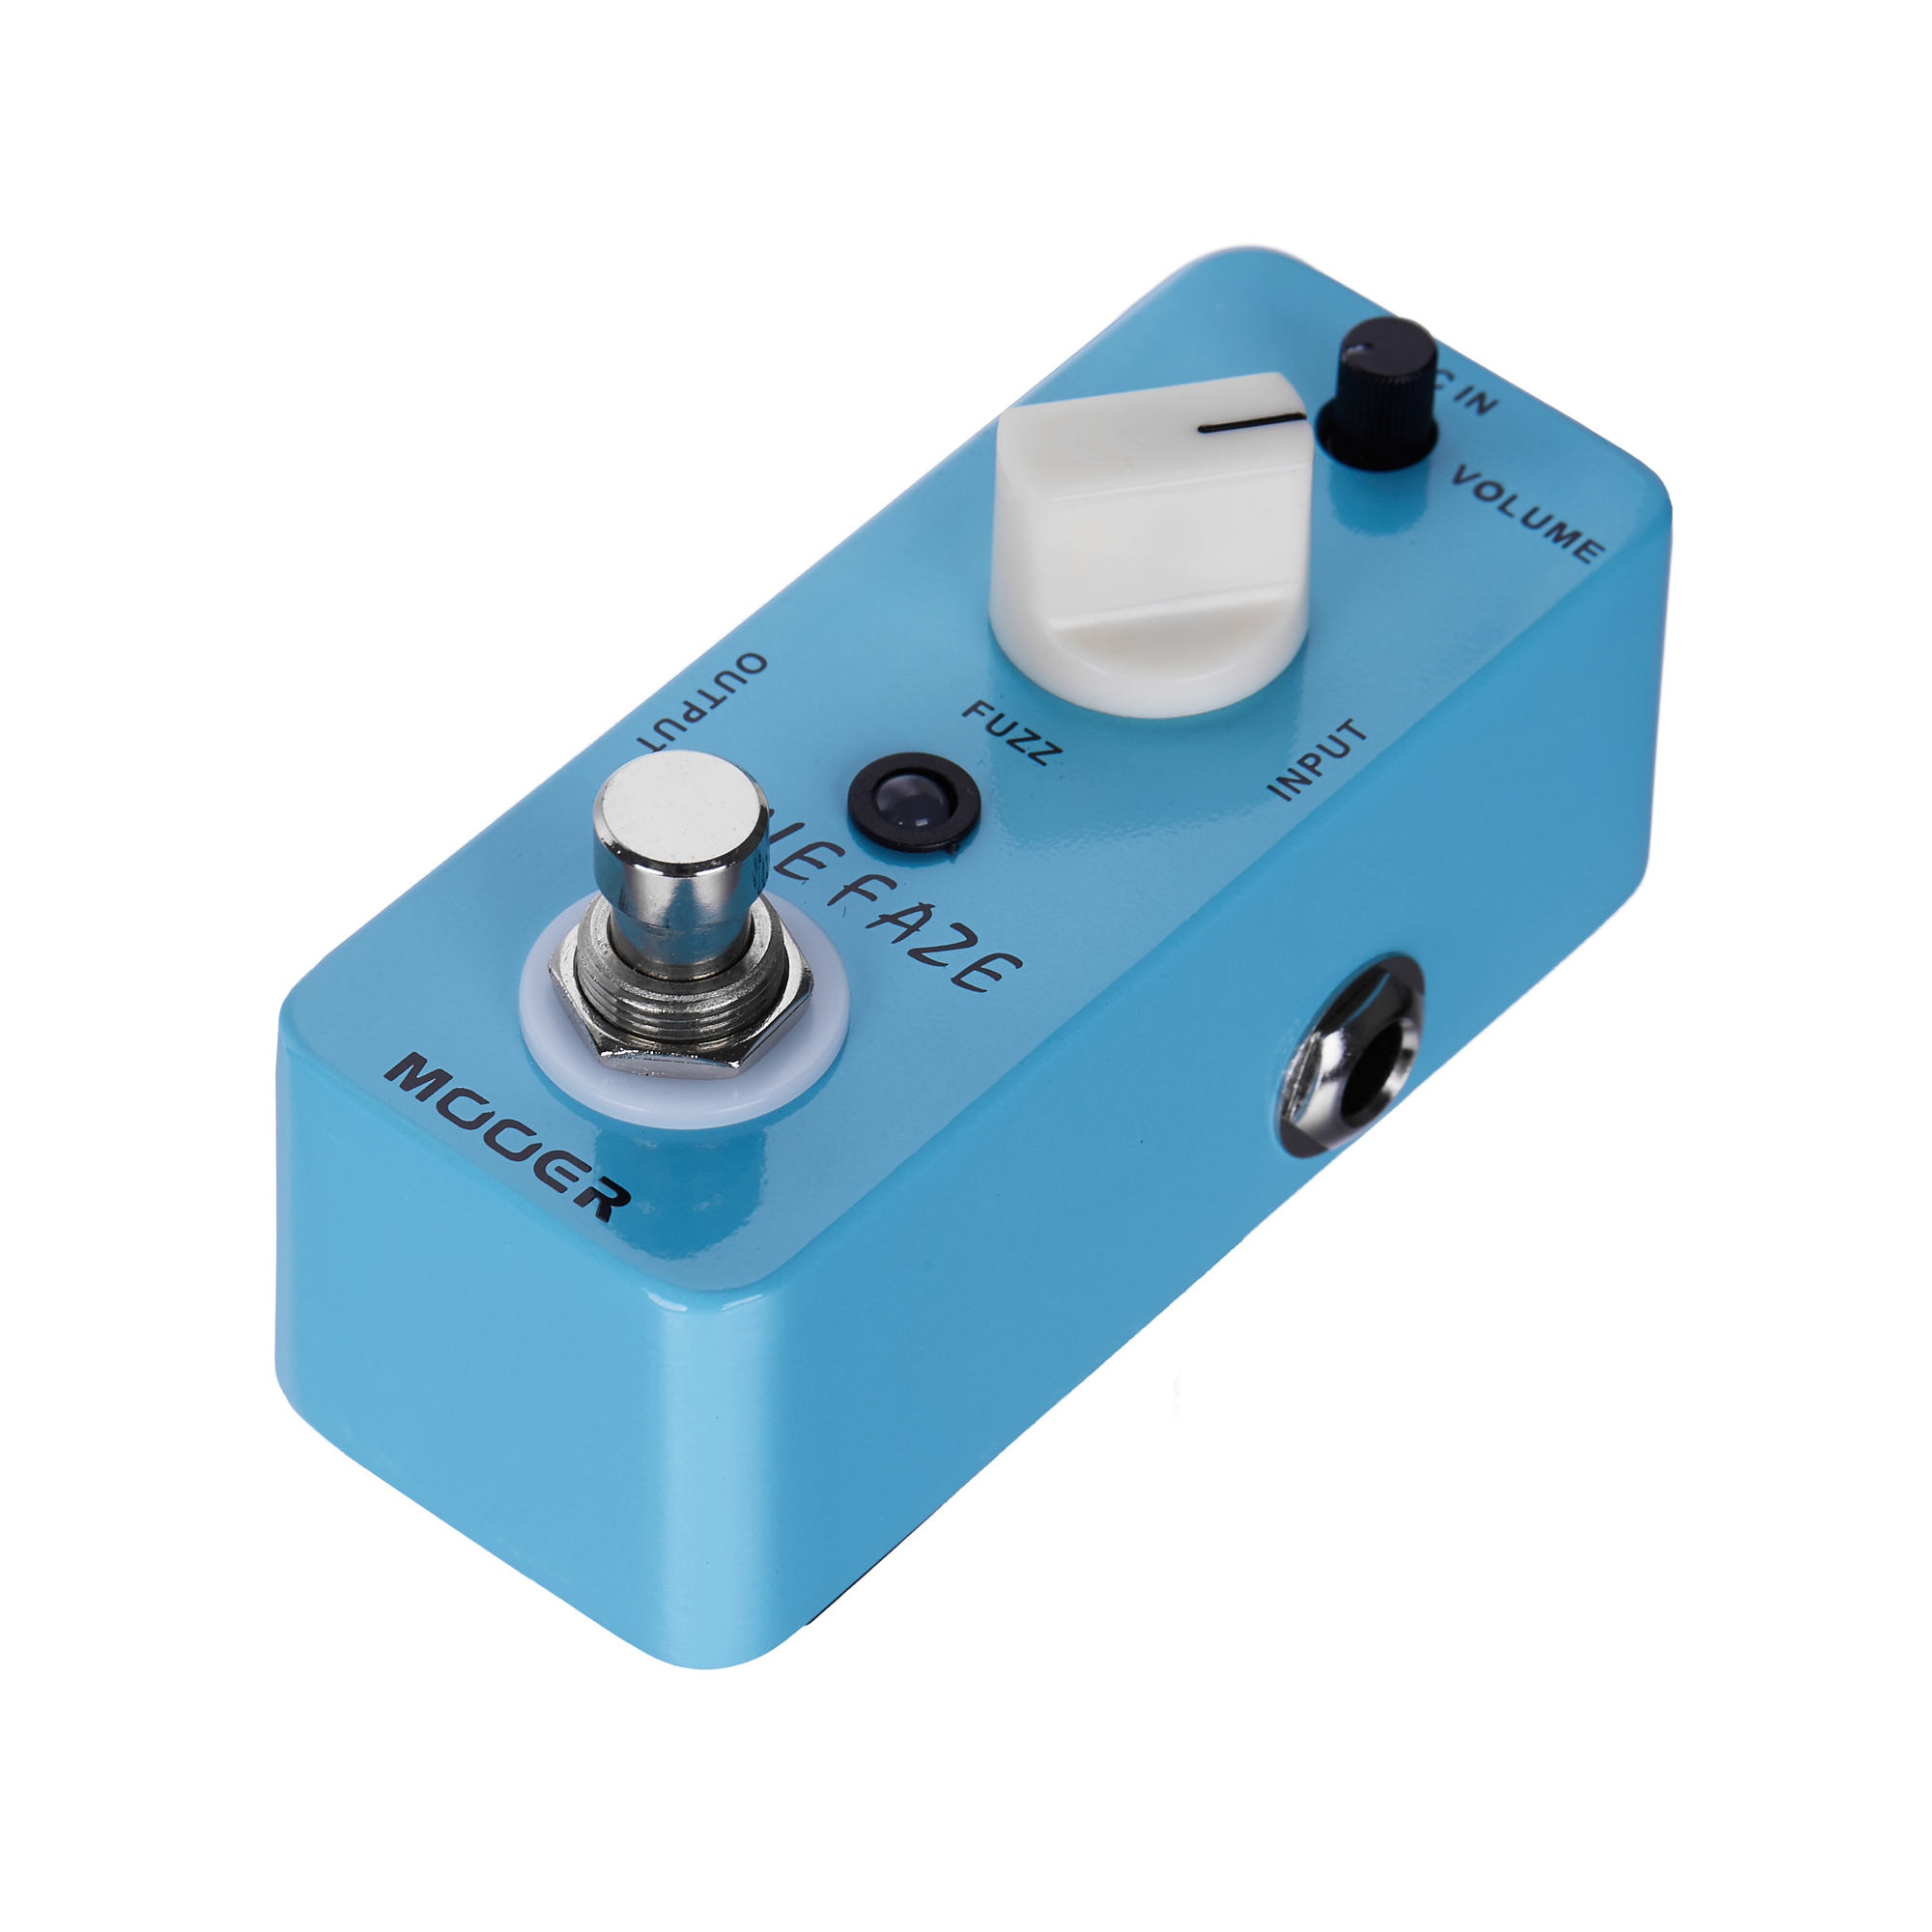 Mooer Blue Faze Fuzz Pedal Electric Guitar Effect Pedal True Bypass MFZ1 mooer ensemble queen bass chorus effect pedal mini guitar effects true bypass with free connector and footswitch topper